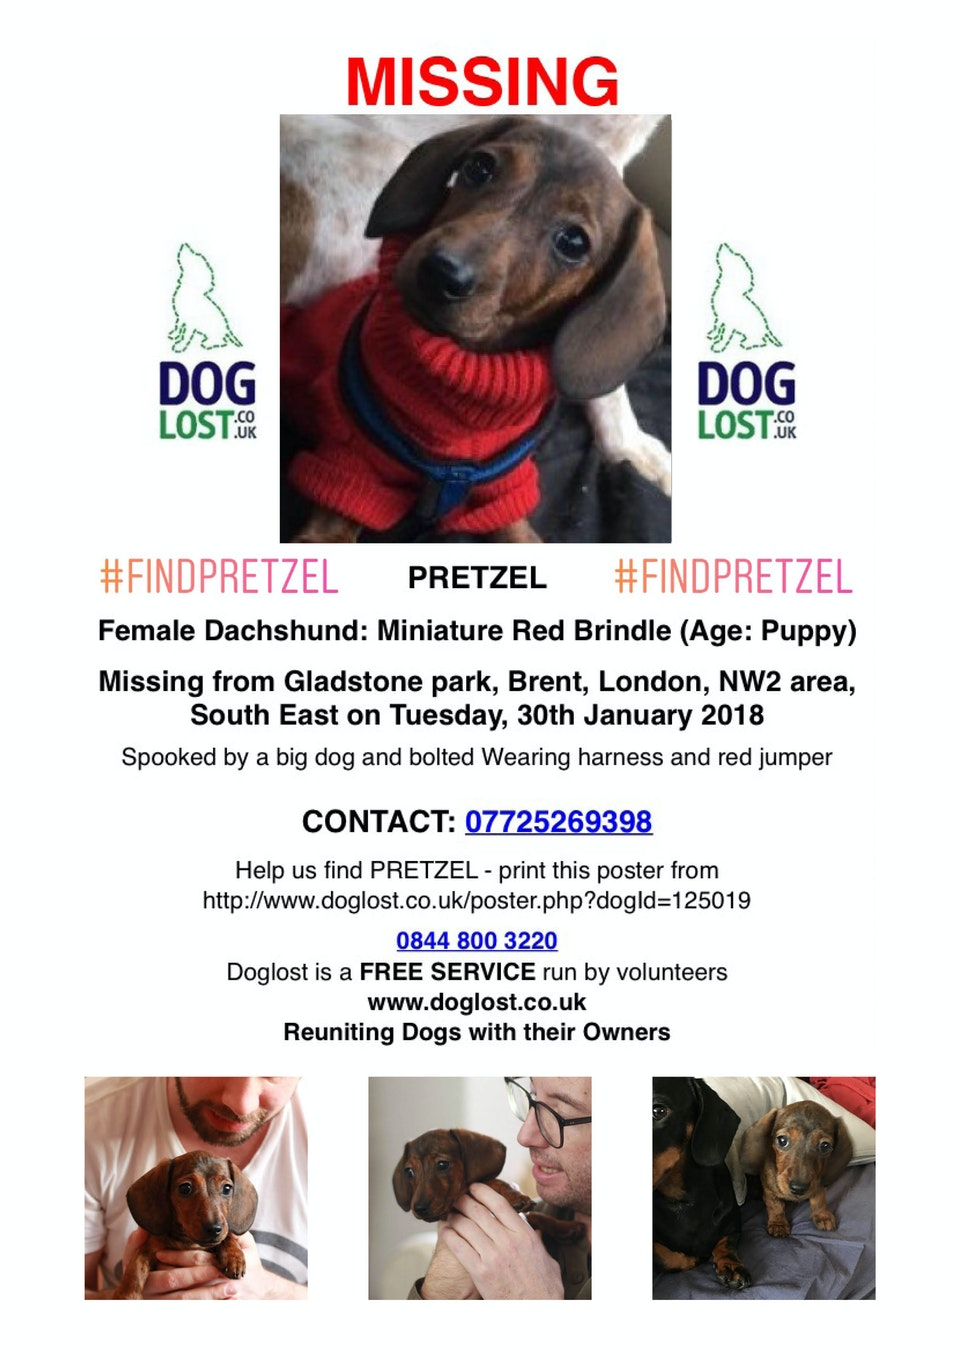 LOST: Pretzel the Dachshund